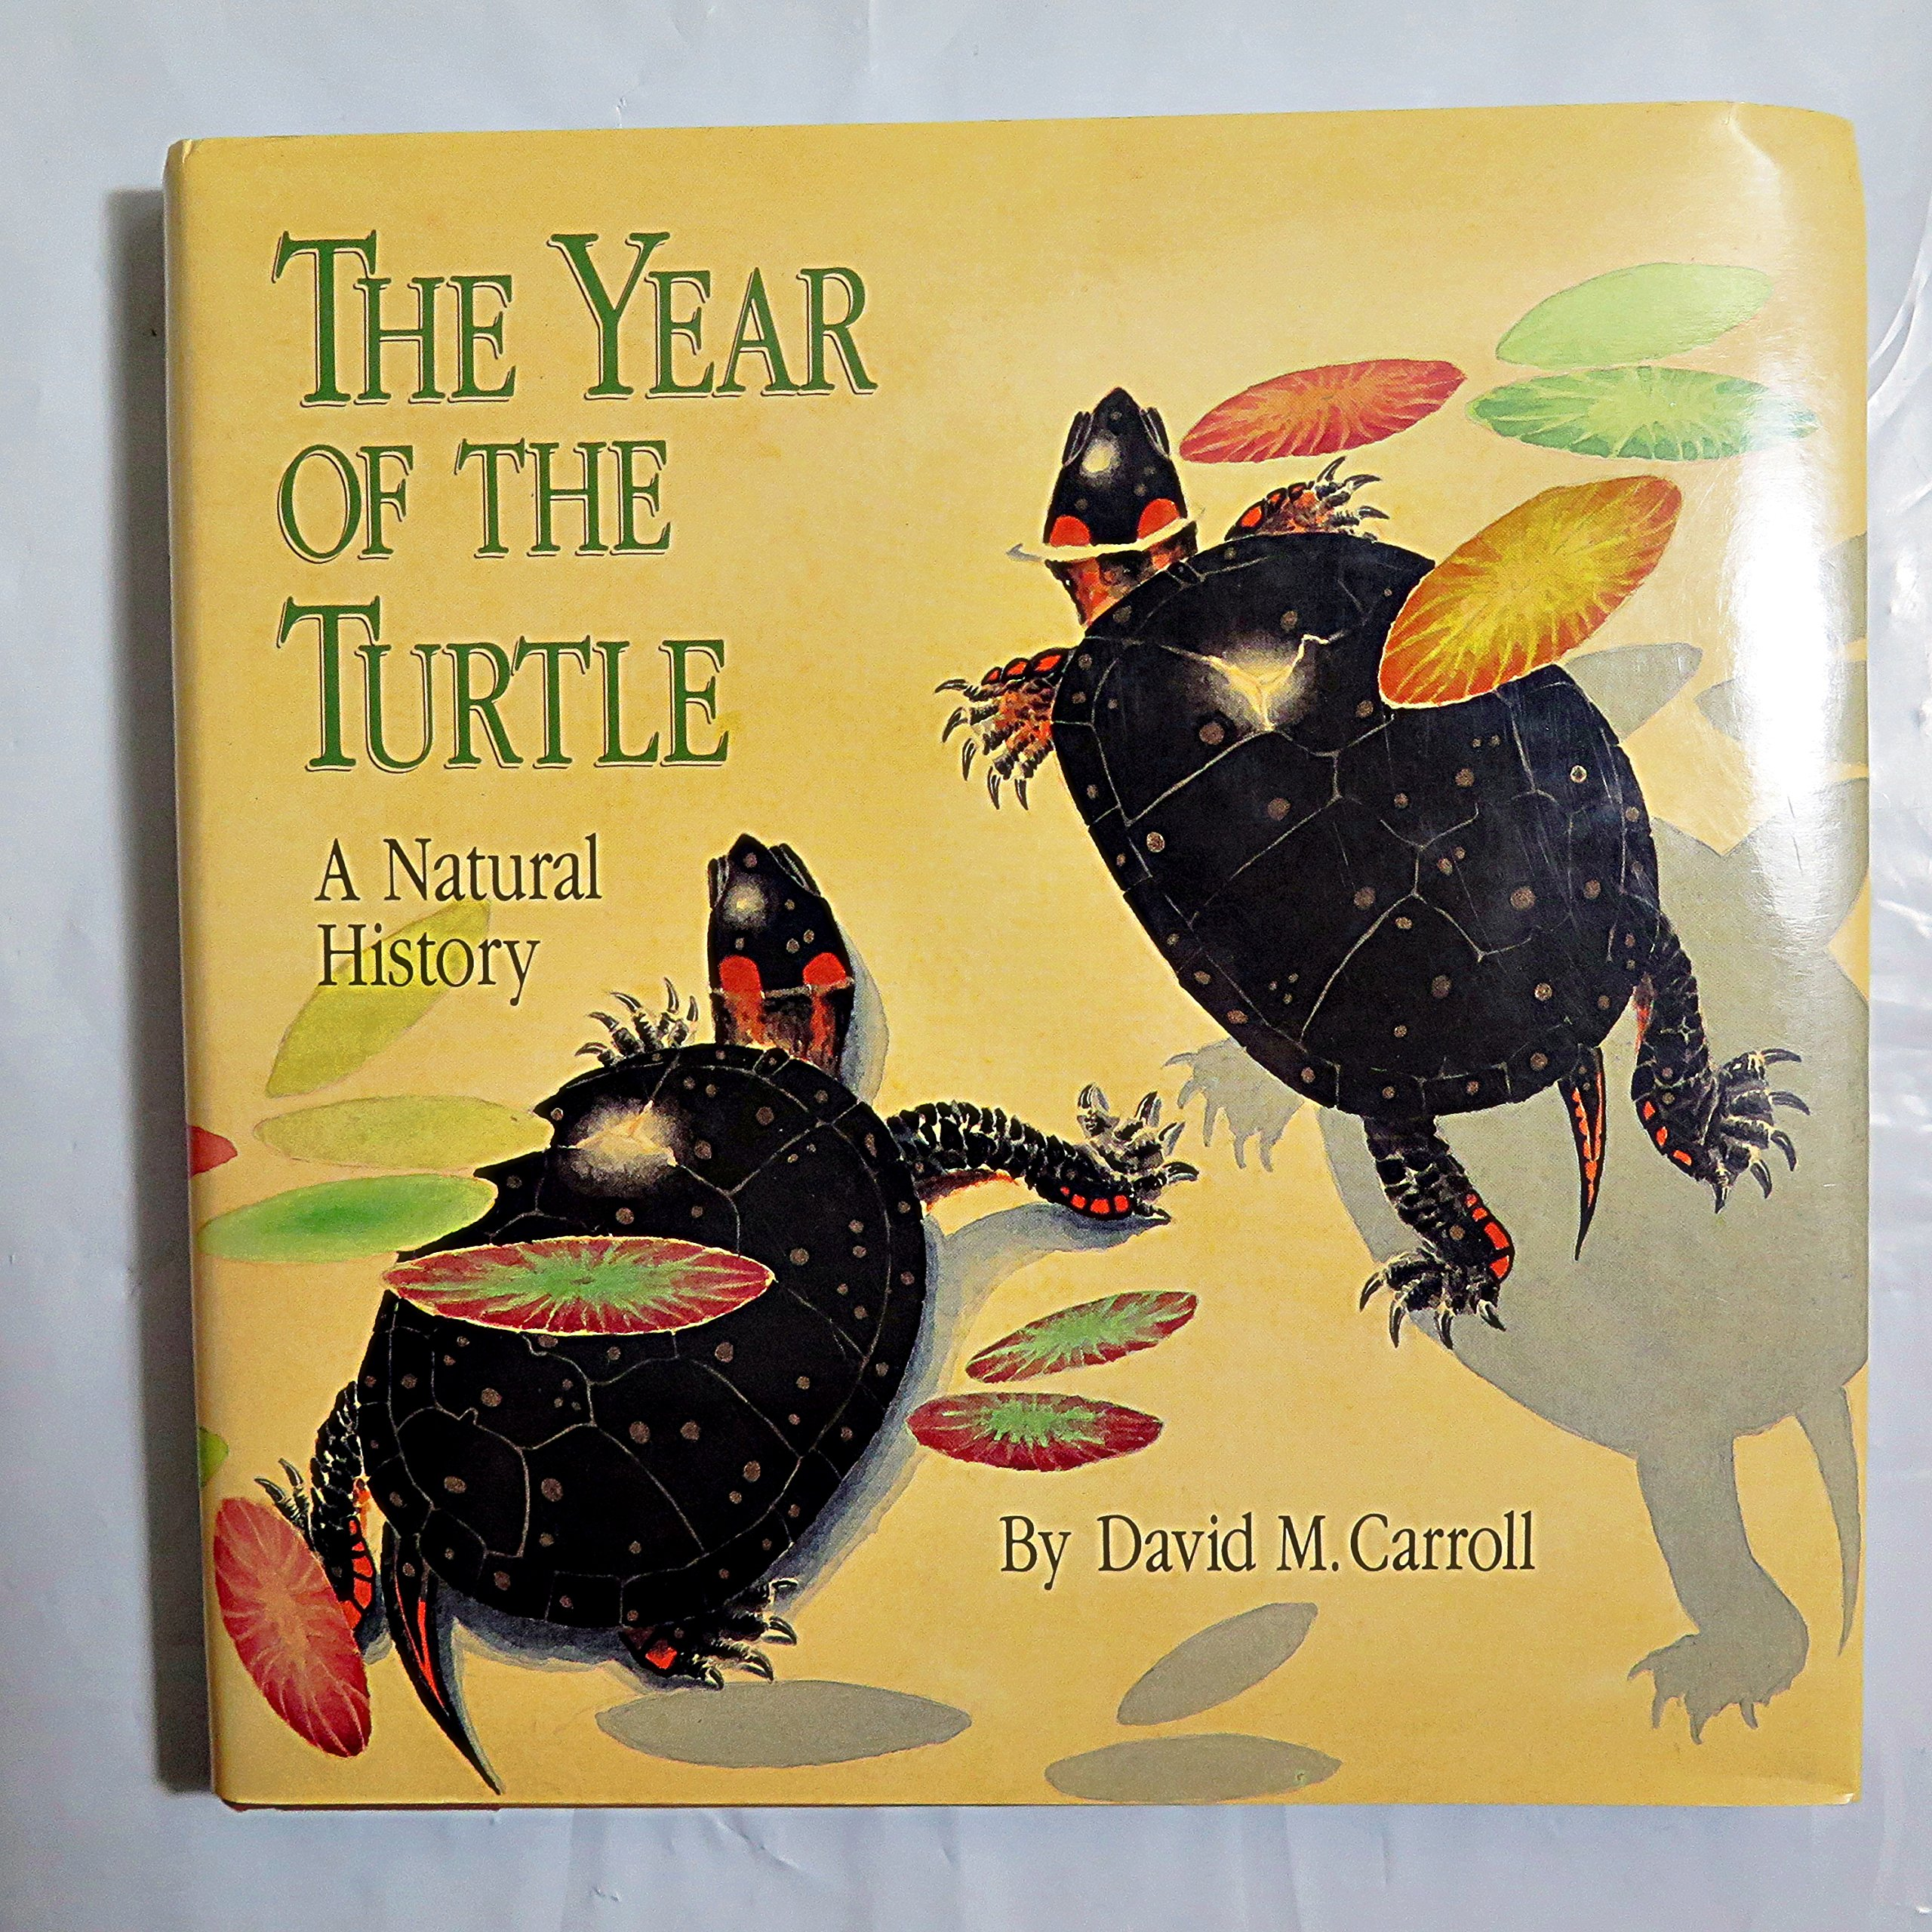 The Year of the Turtle: A Natural History